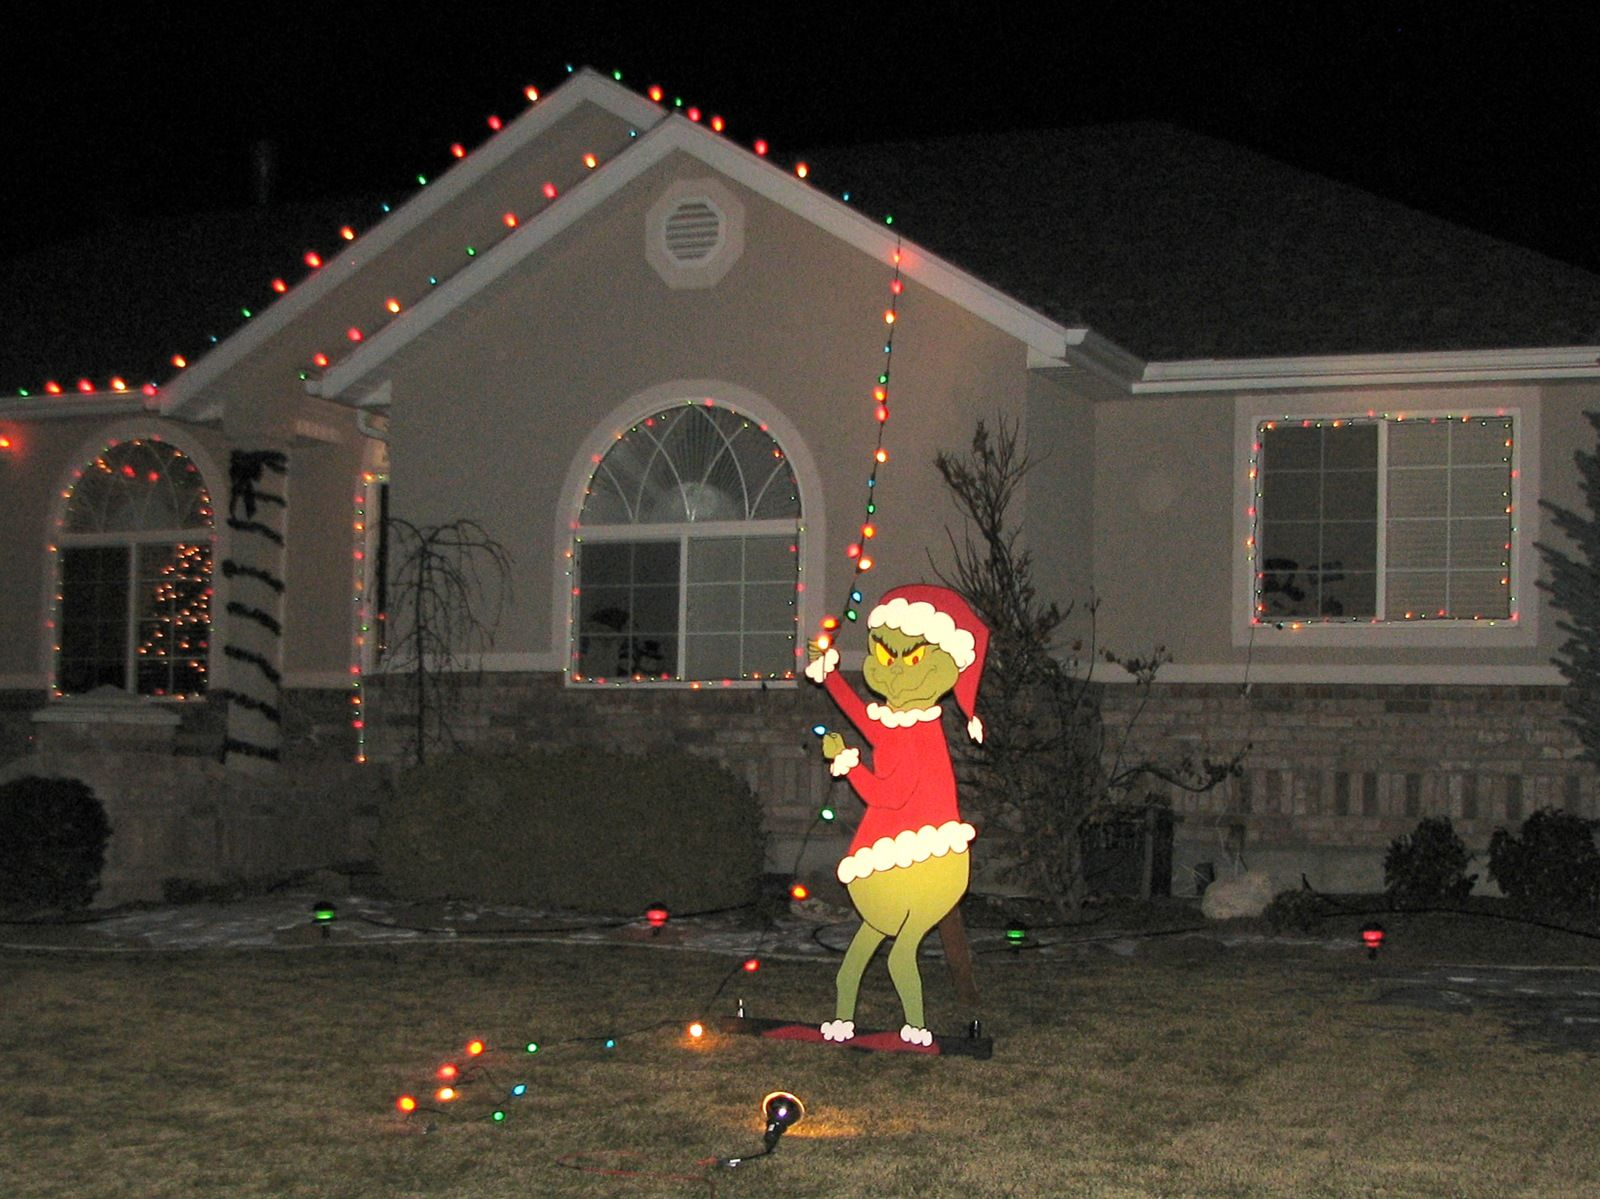 grinch decorations christmas yard decorations christmas diy grinch christmas tree lawn decorations - Grinch Christmas Yard Decorations